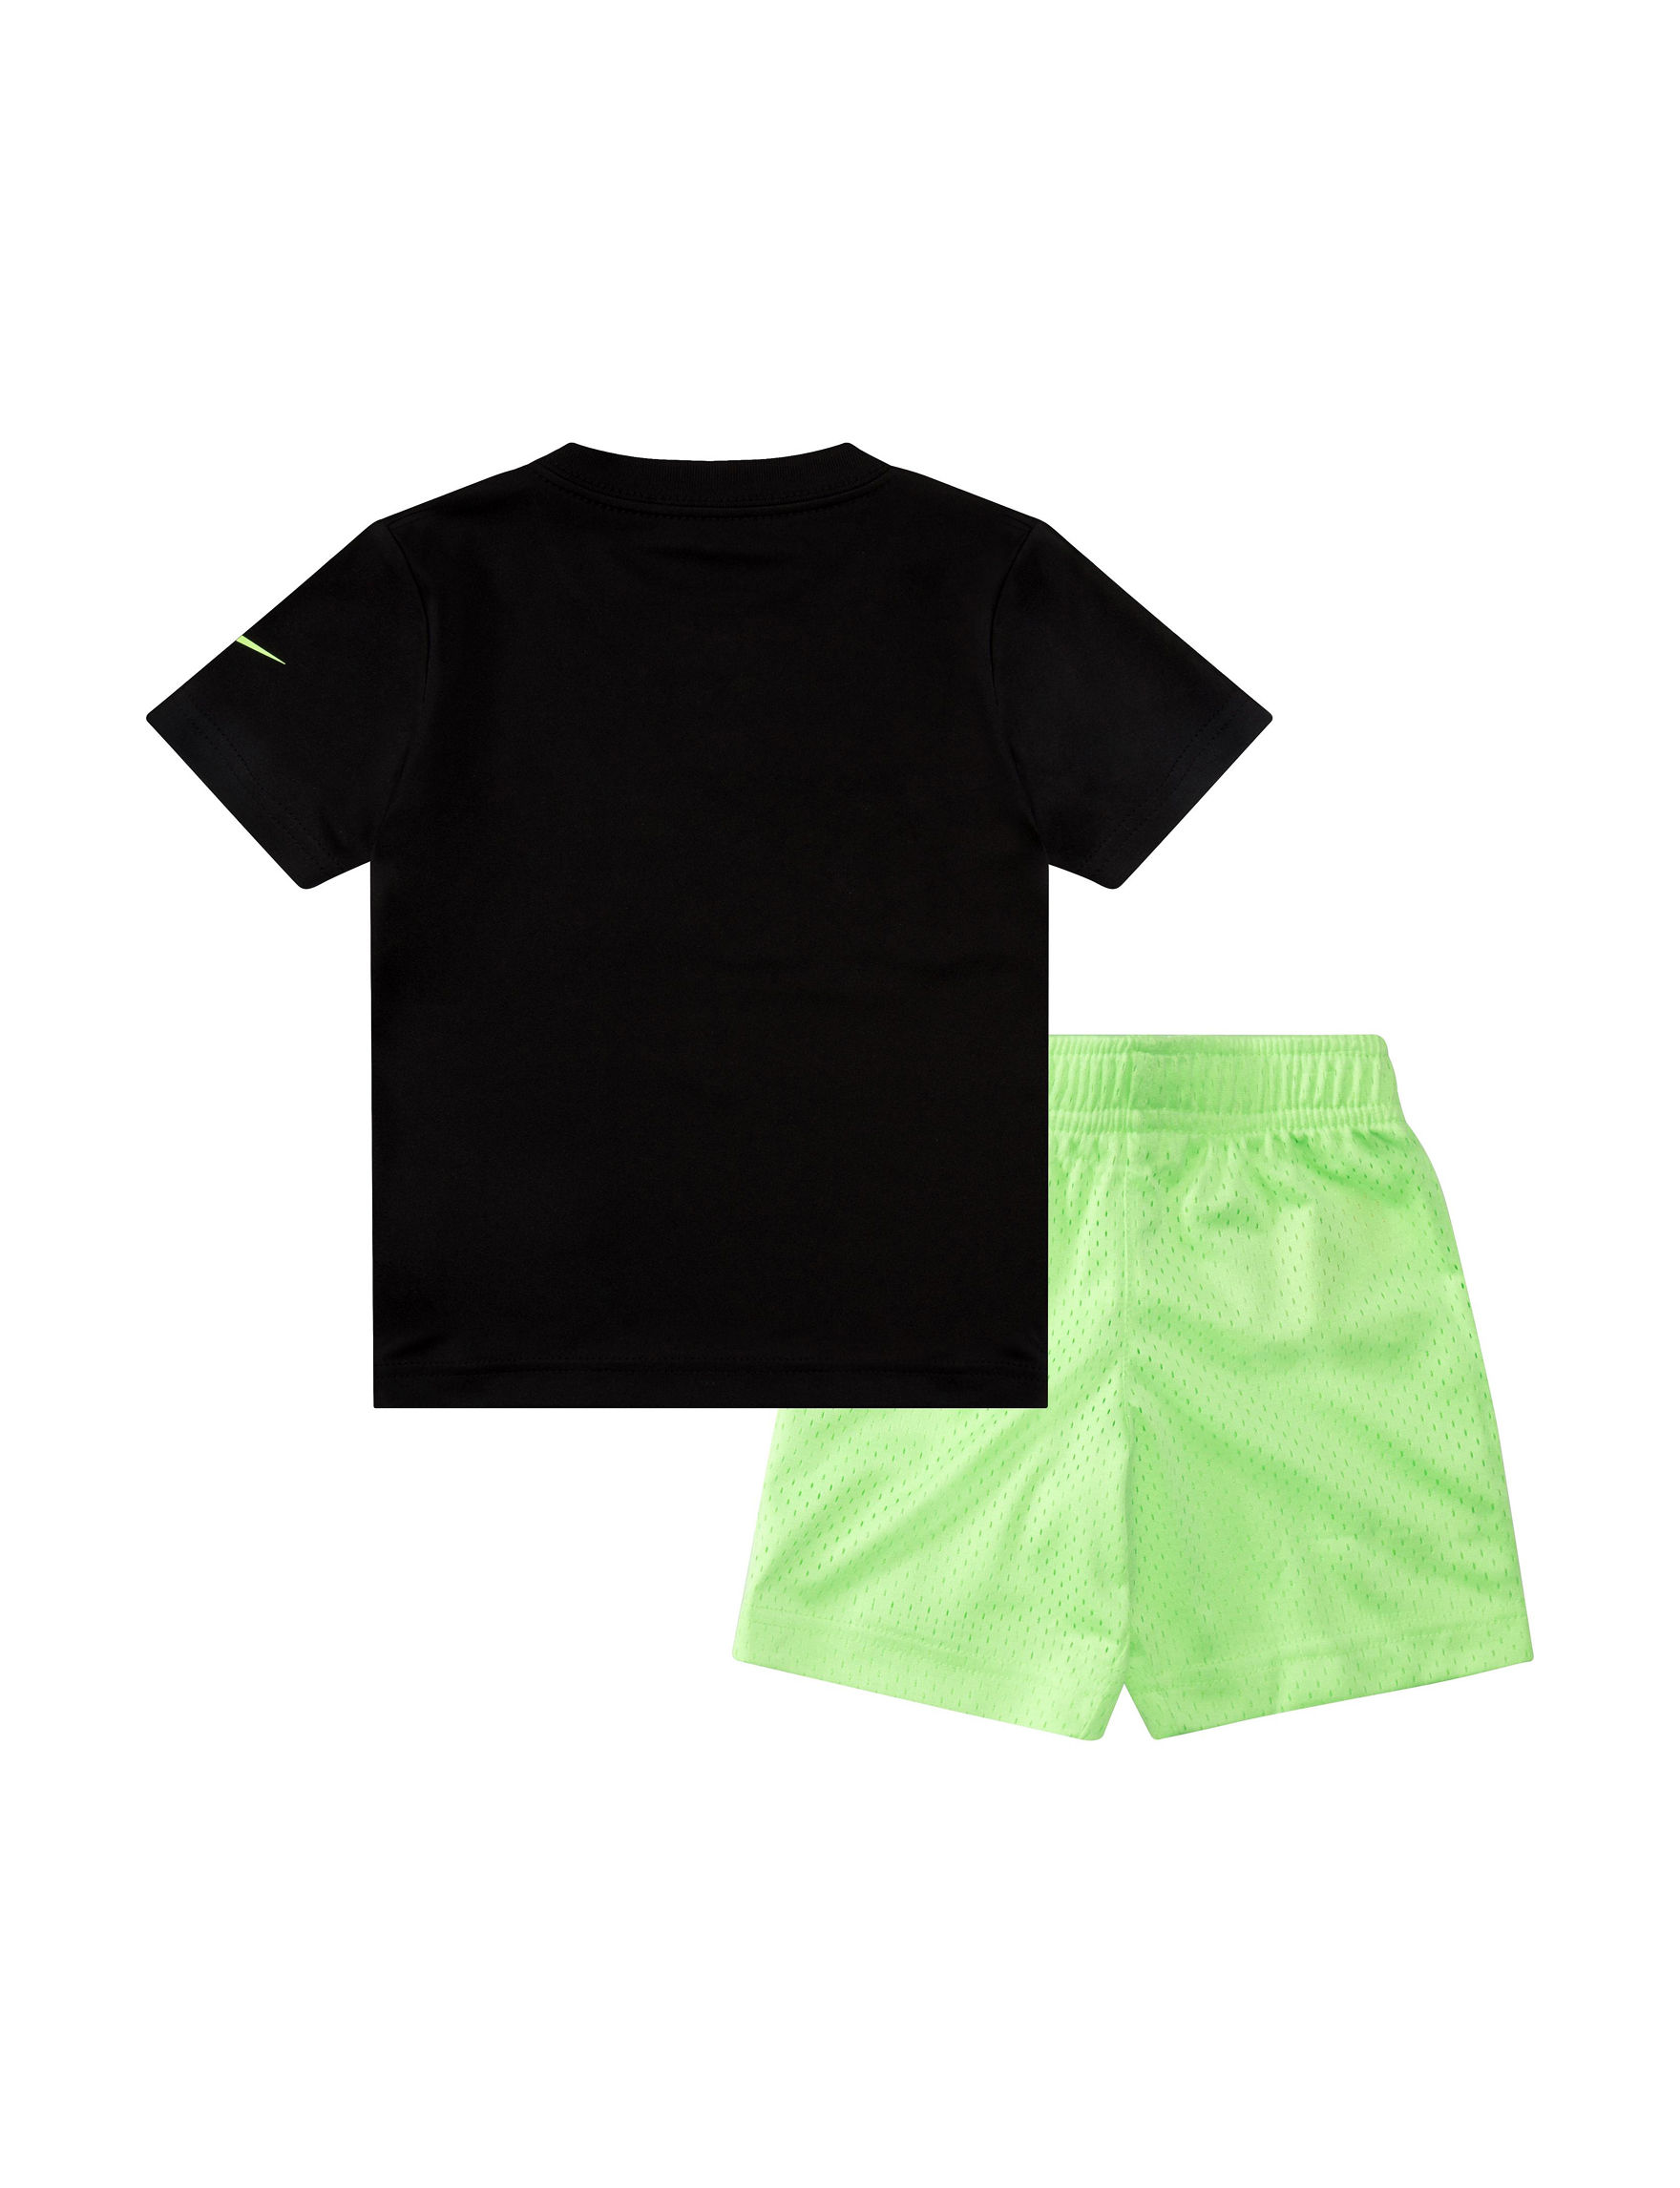 46f7a08542ee Nike 2-pc. Dri-FIT Goal Oriented T-shirt & Shorts Set - Toddler Boys ...